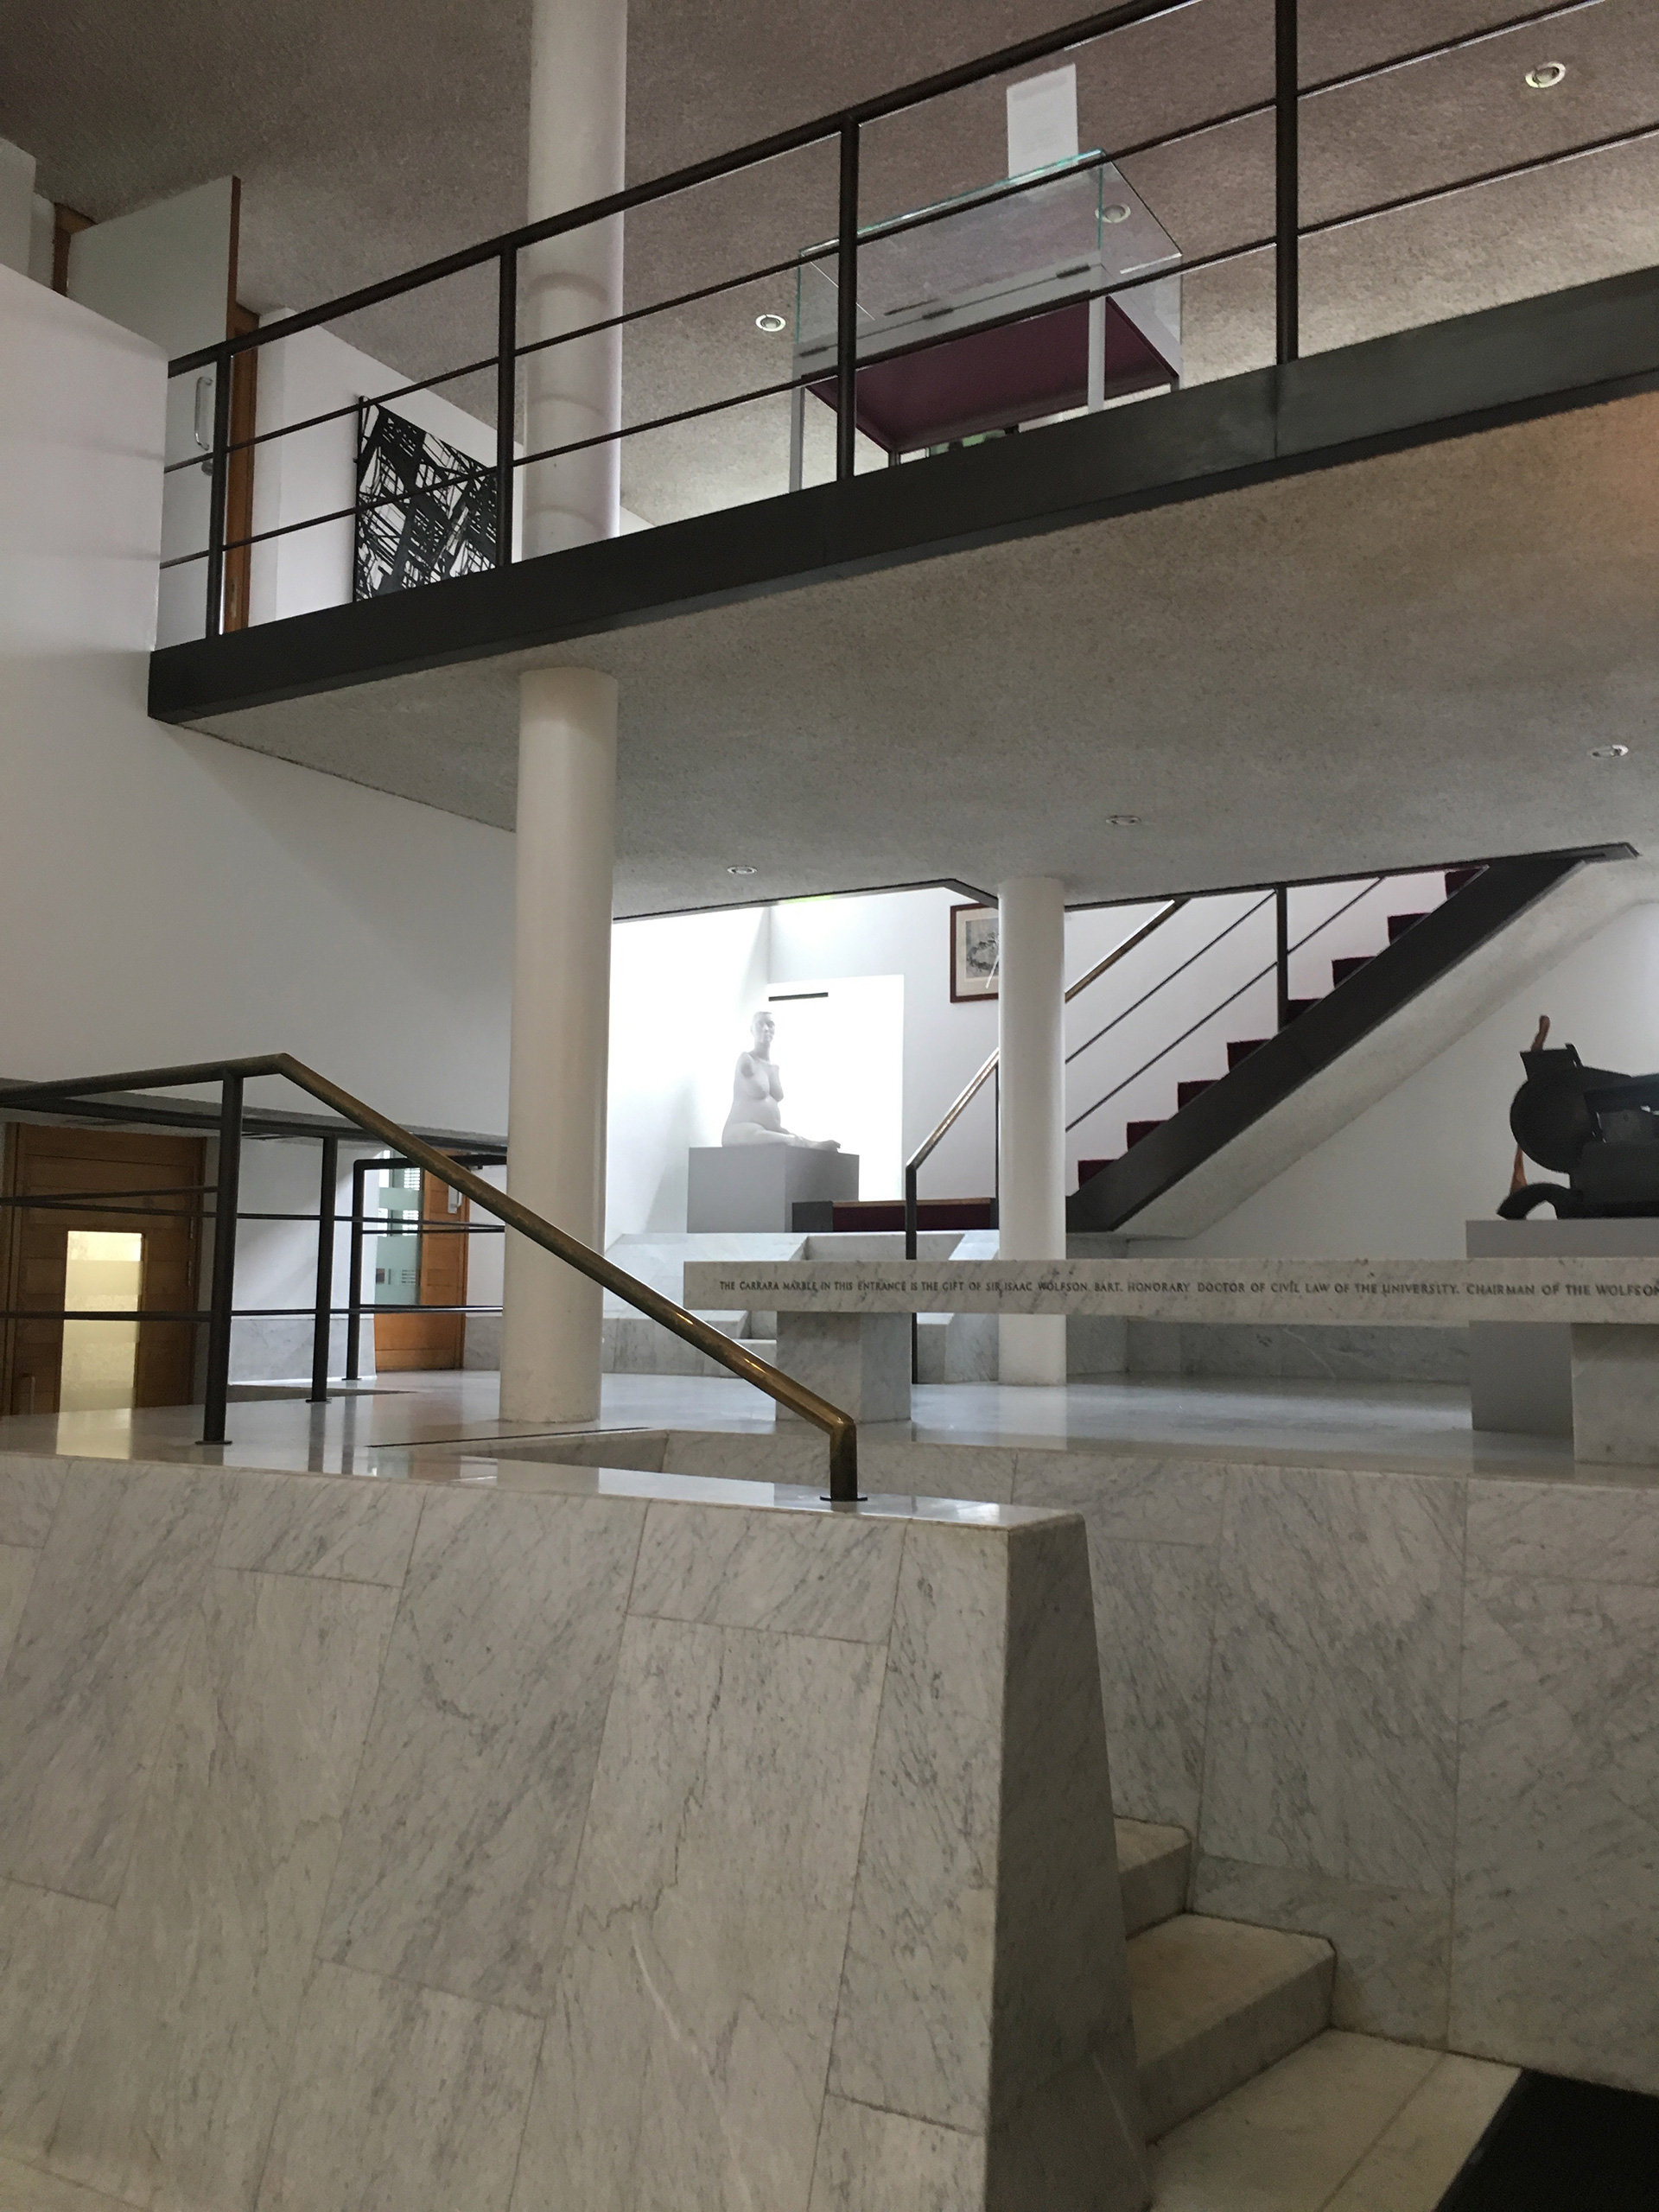 The Marble Staircase in patterned Carrera | Modernity in/as Heritage – The architecture of Wolfson College, Oxford | Amit Khanna | STIR